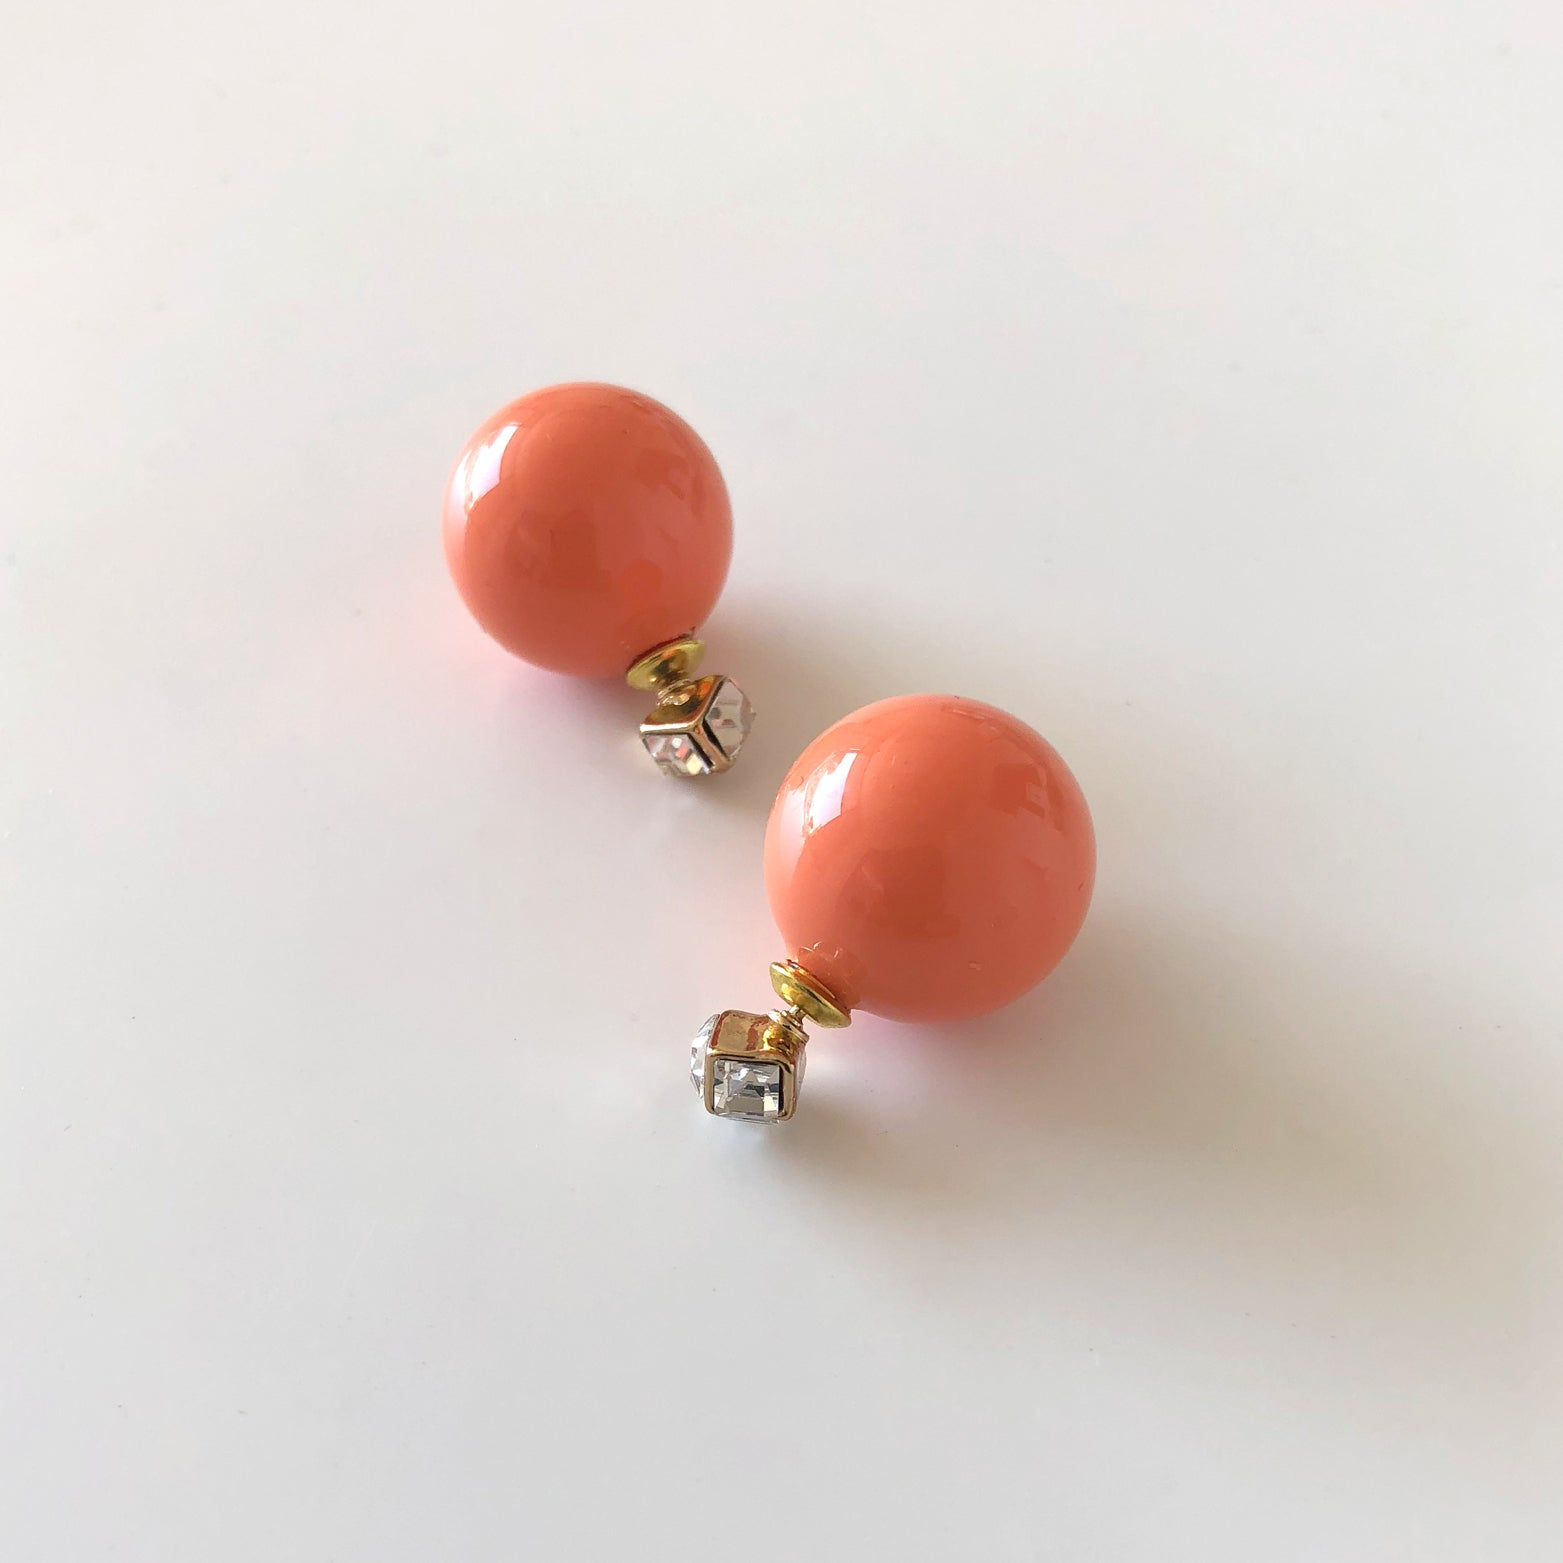 Cube & Bead Stud Earrings